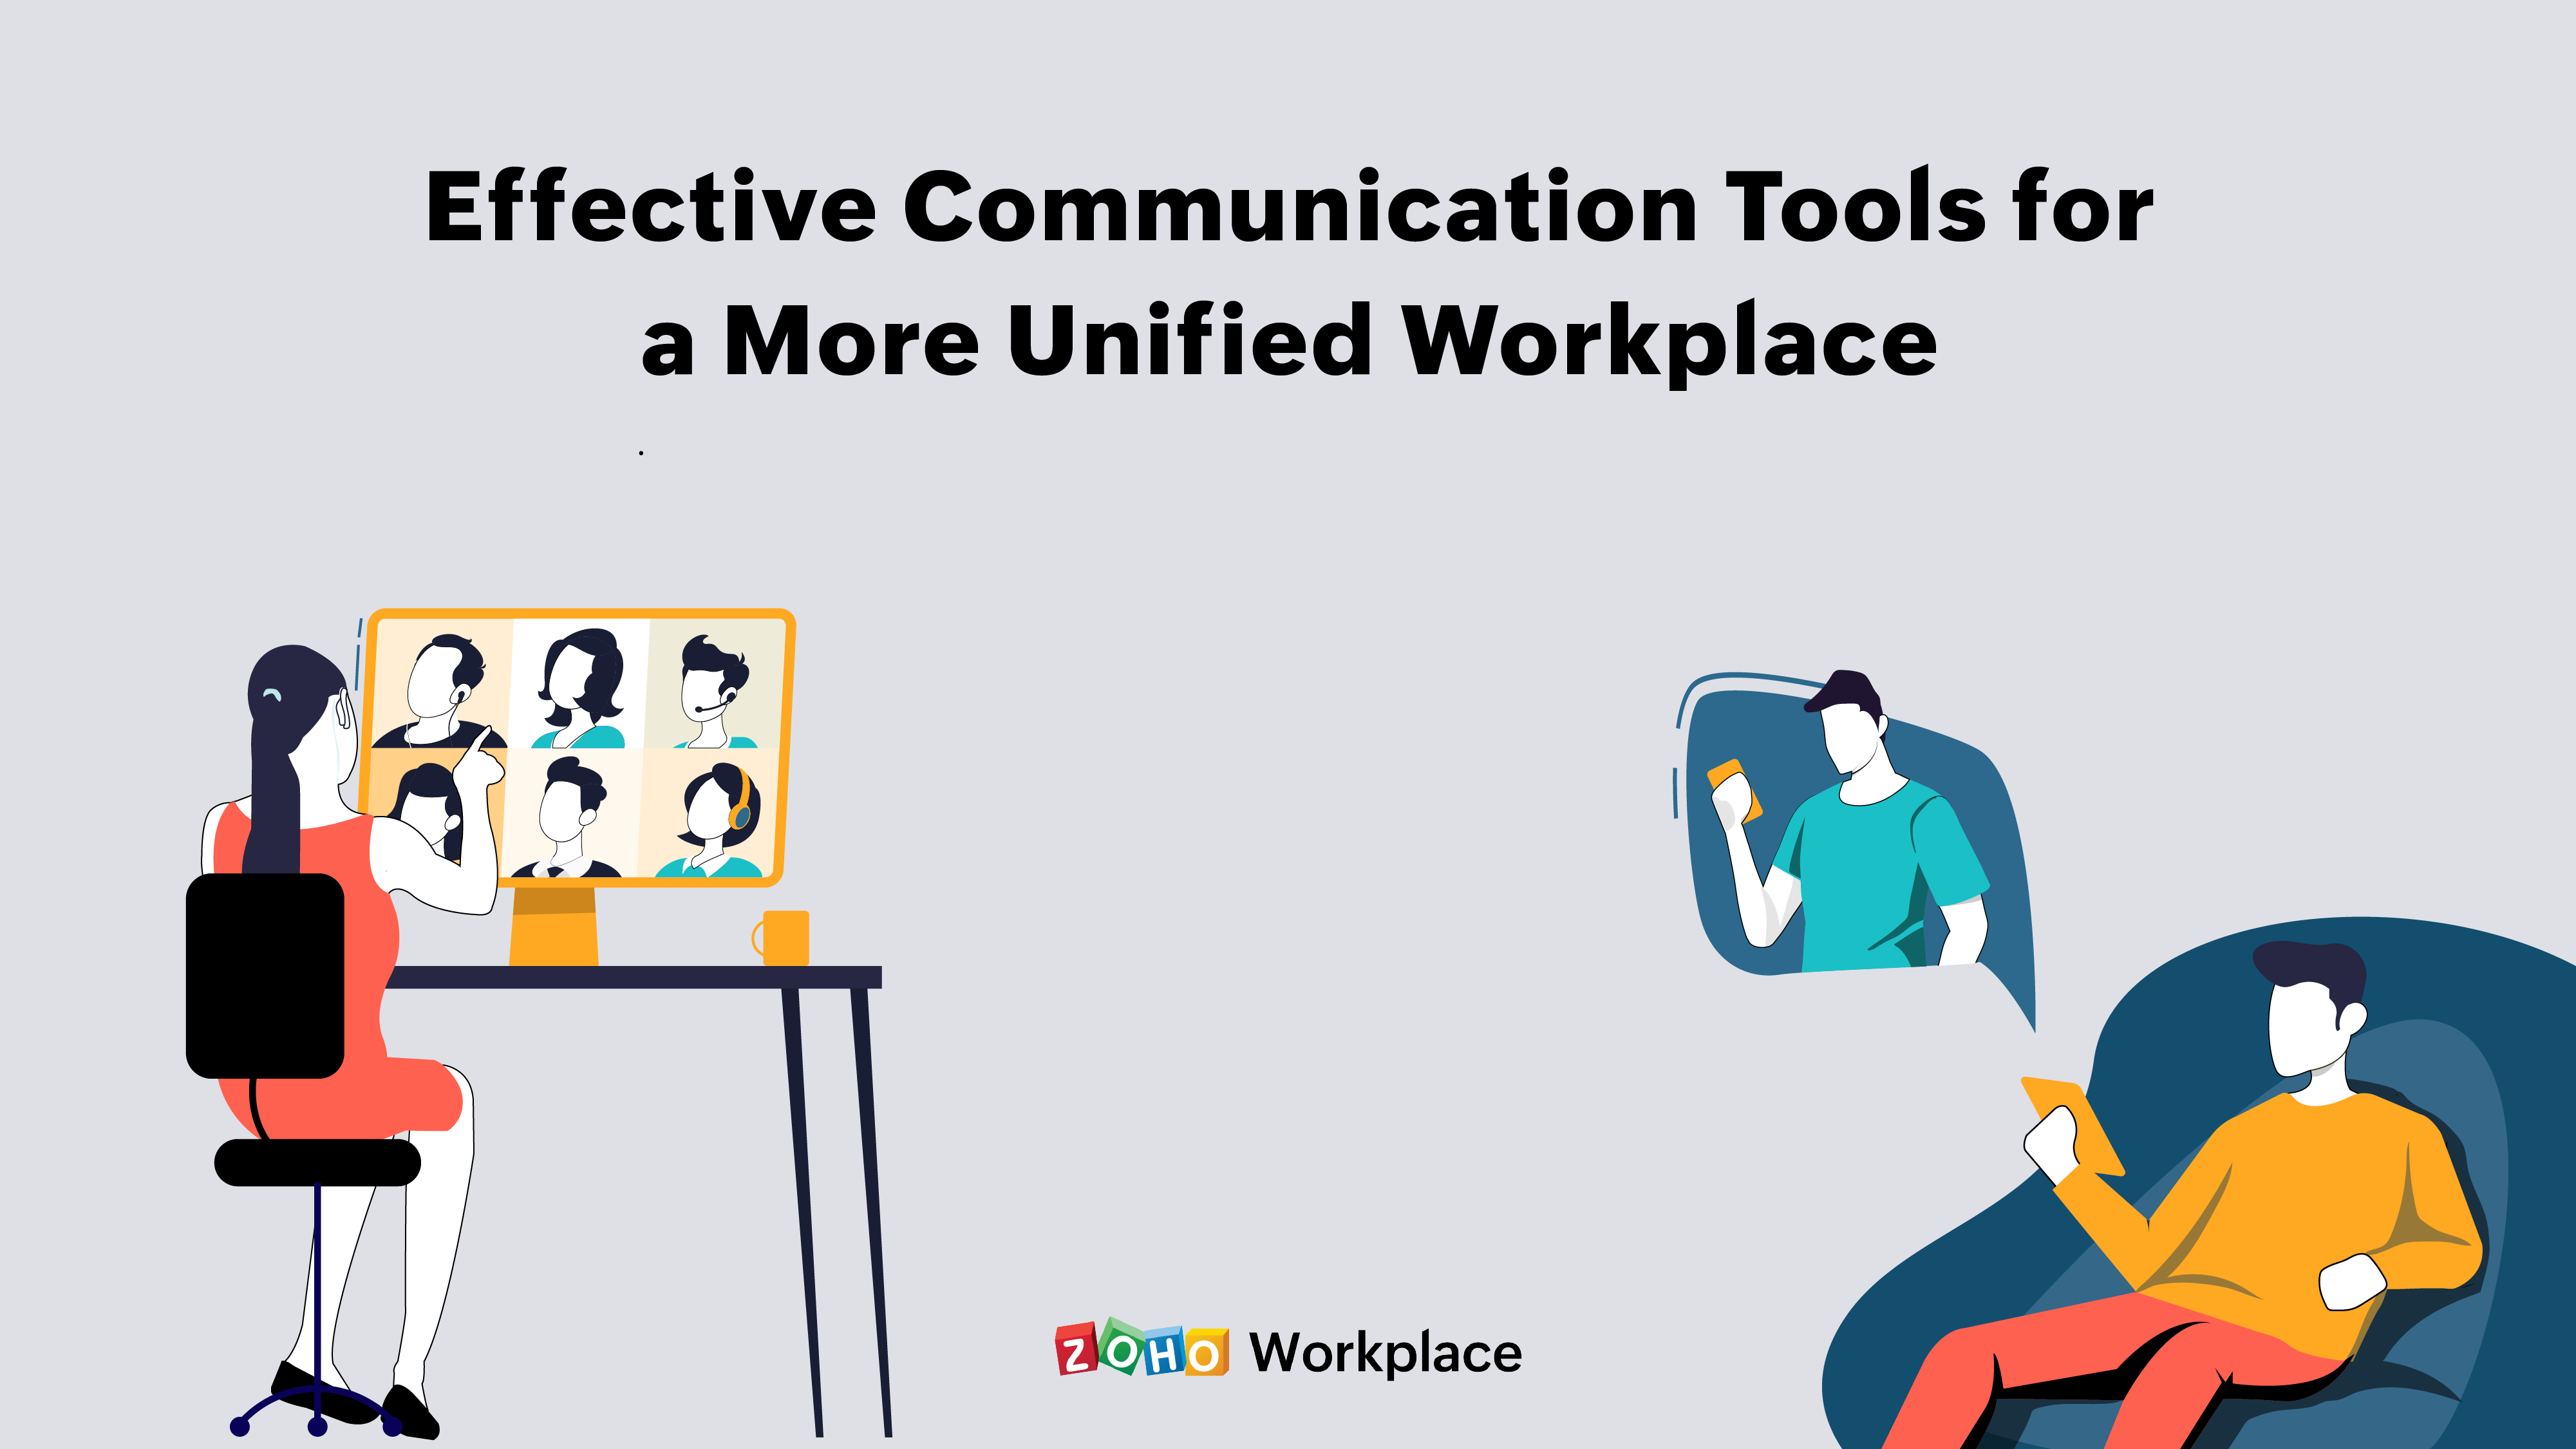 Effective communication tools for a more unified workplace